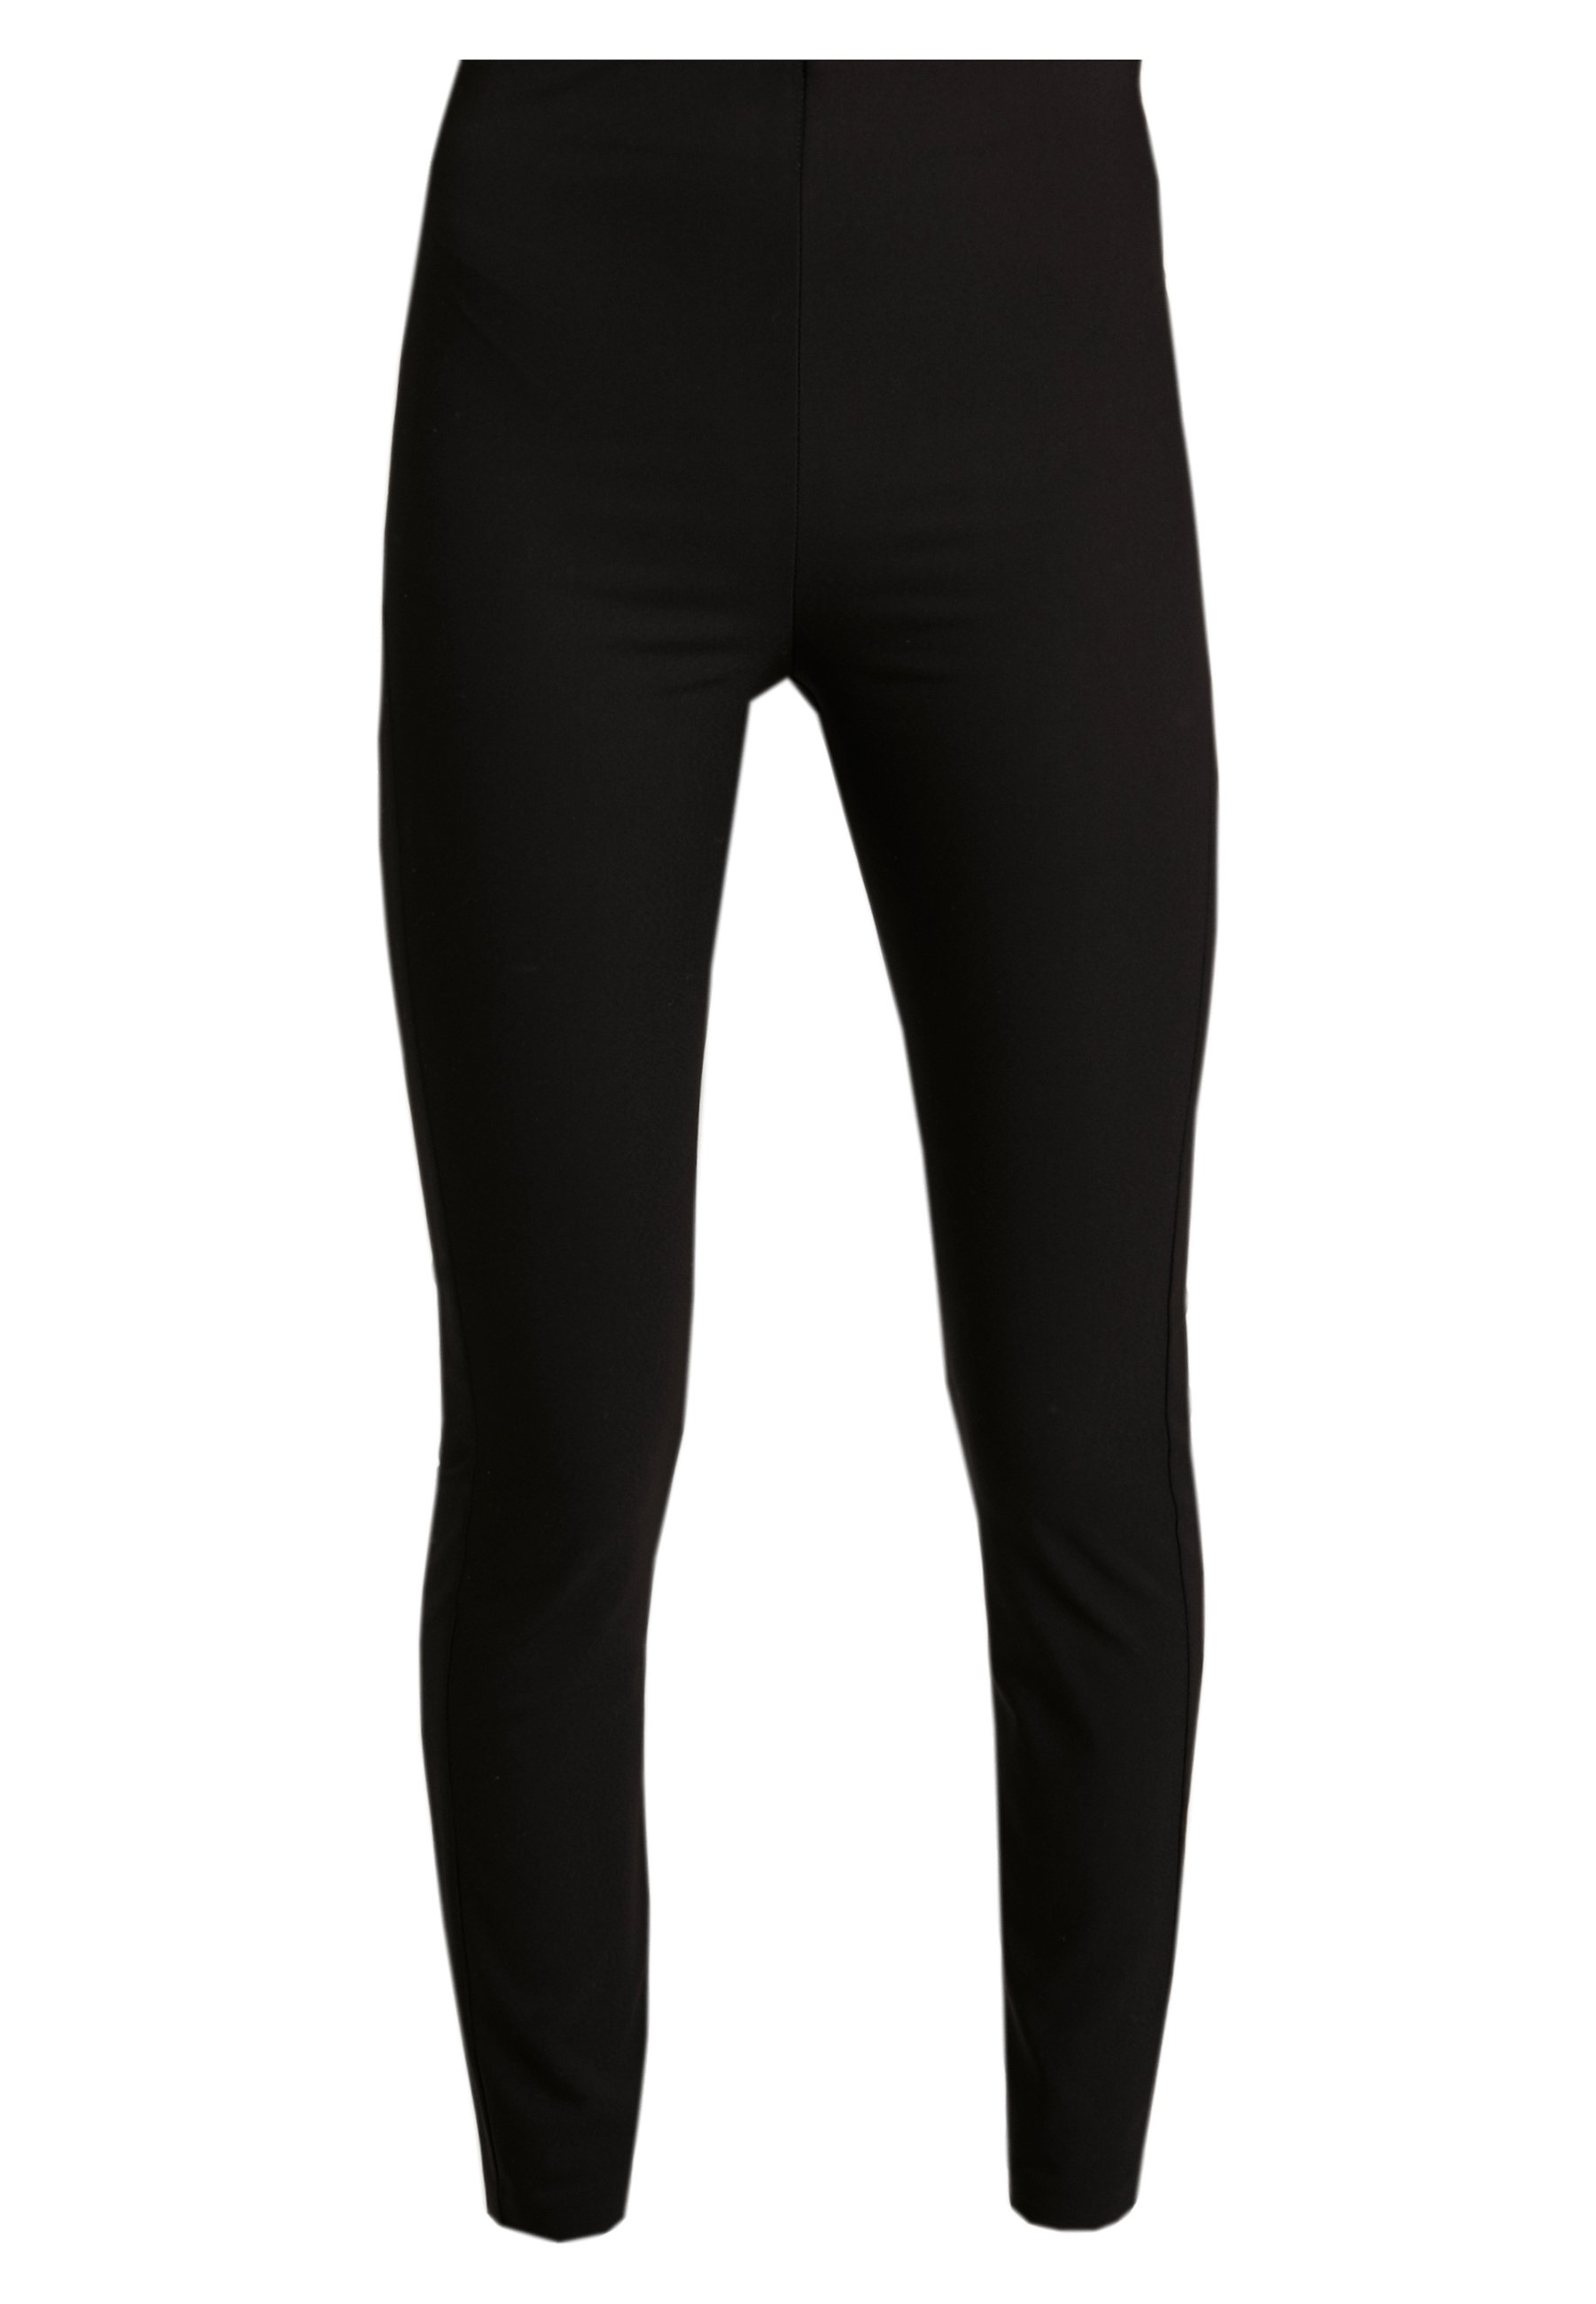 Carin Wester Trousers Kelly - Tygbyxor Black